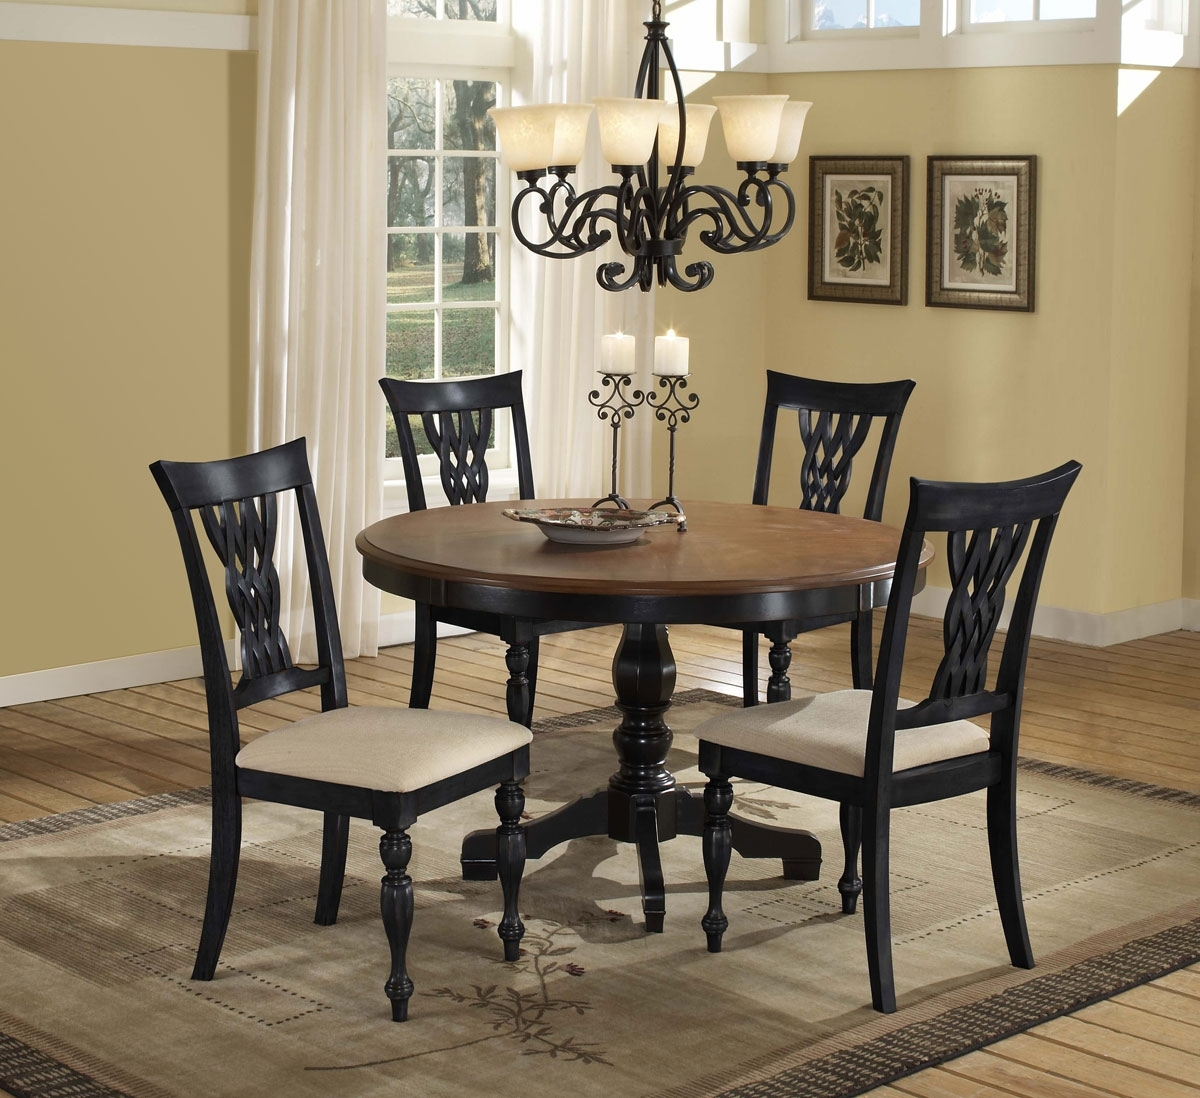 Trendy Hillsdale Embassy Round Pedestal Dining Table – Rubbed Black For Dark Round Dining Tables (View 6 of 25)